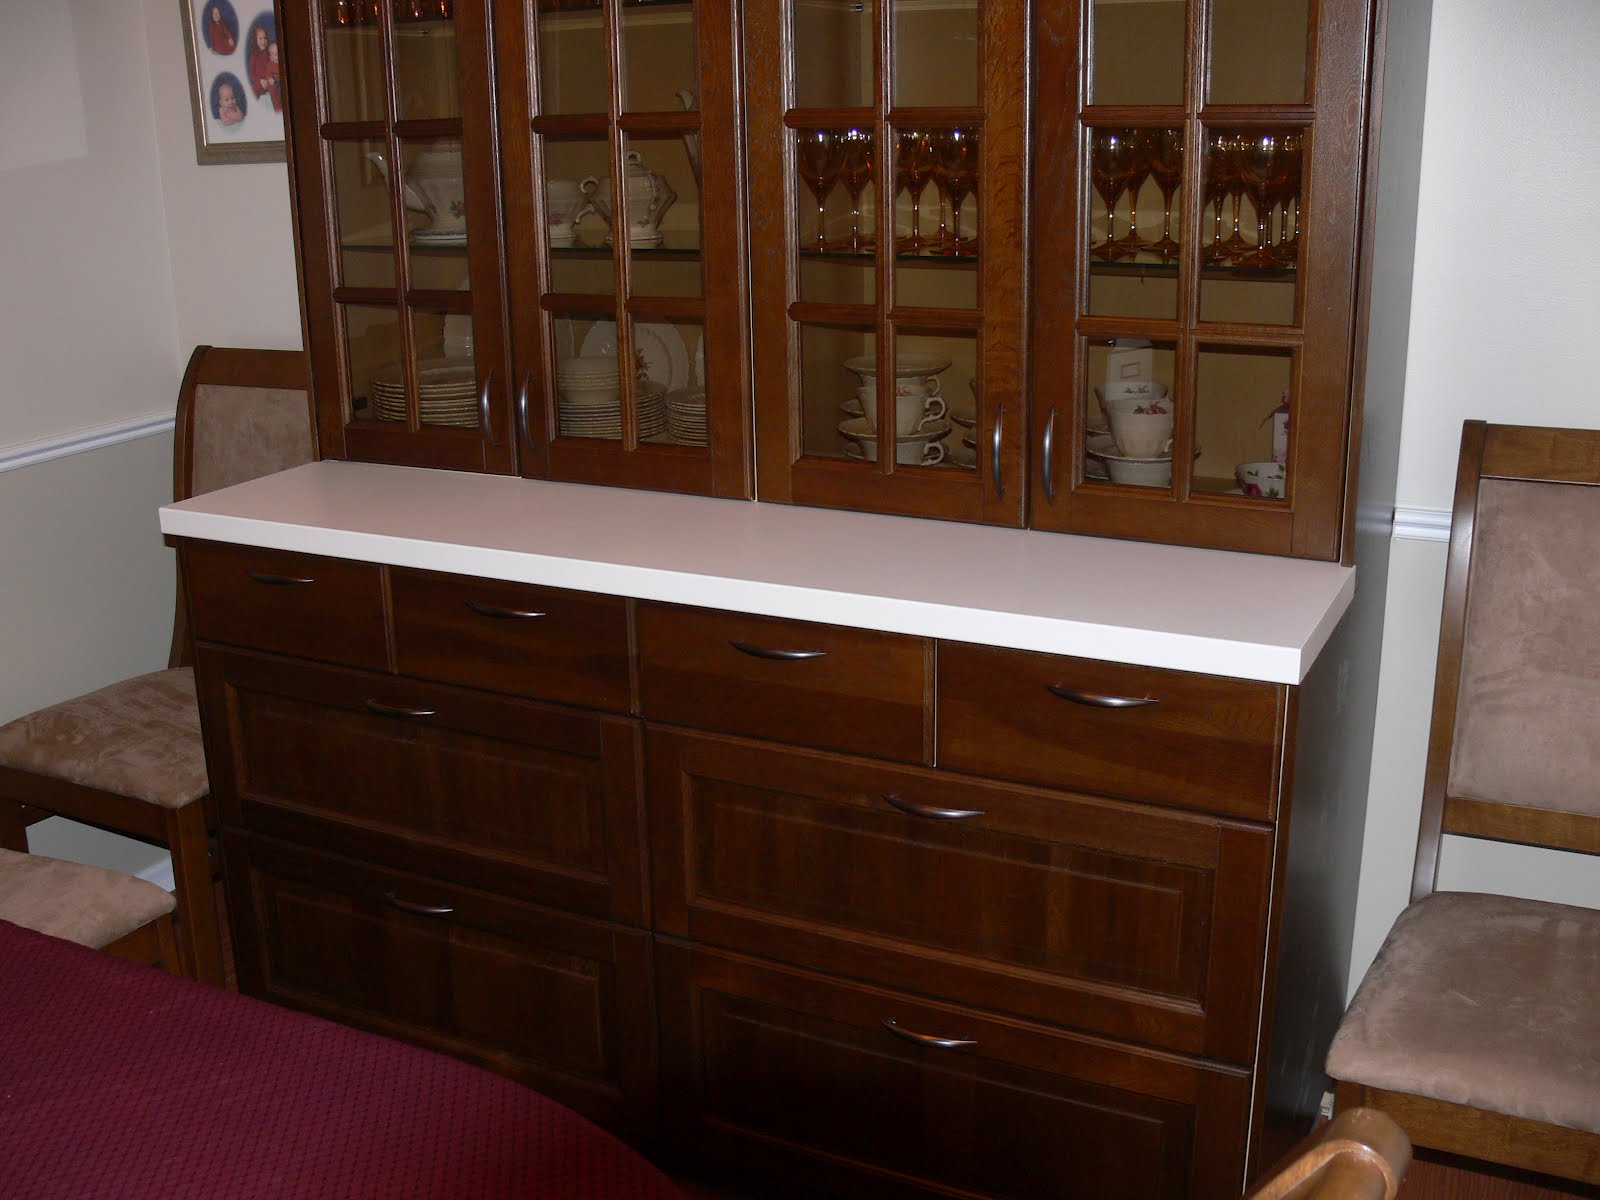 With Liljestad Dark Brown Drawers Doors And Cover Panels The Counter Surface Is A PRAGEL White Tools Required Include Jig Saw Table